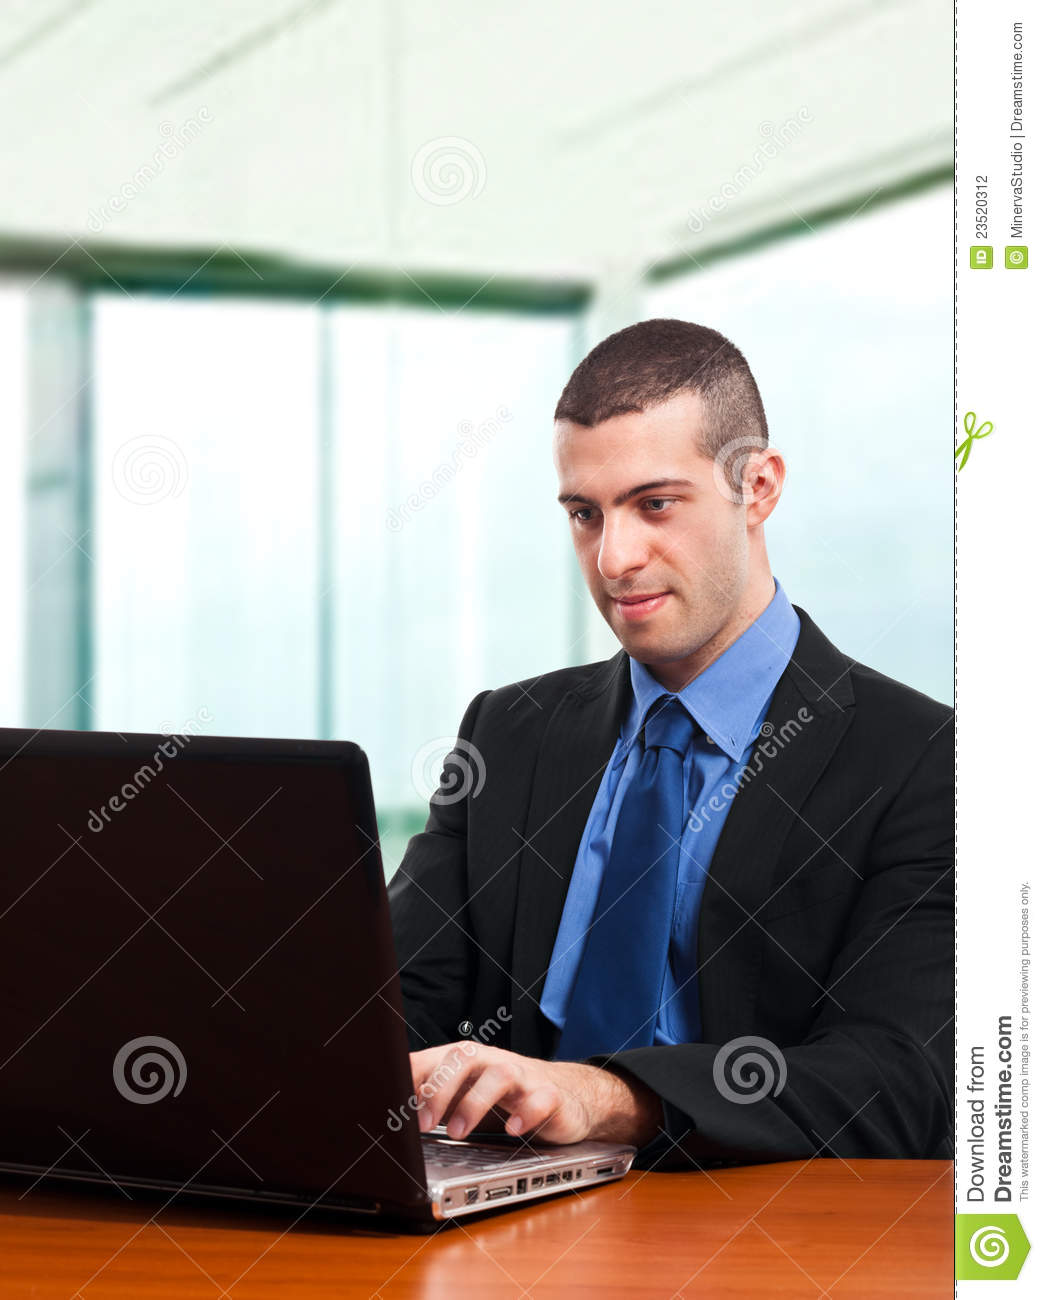 Homme d 39 affaires au bureau photographie stock image for Bureau homme